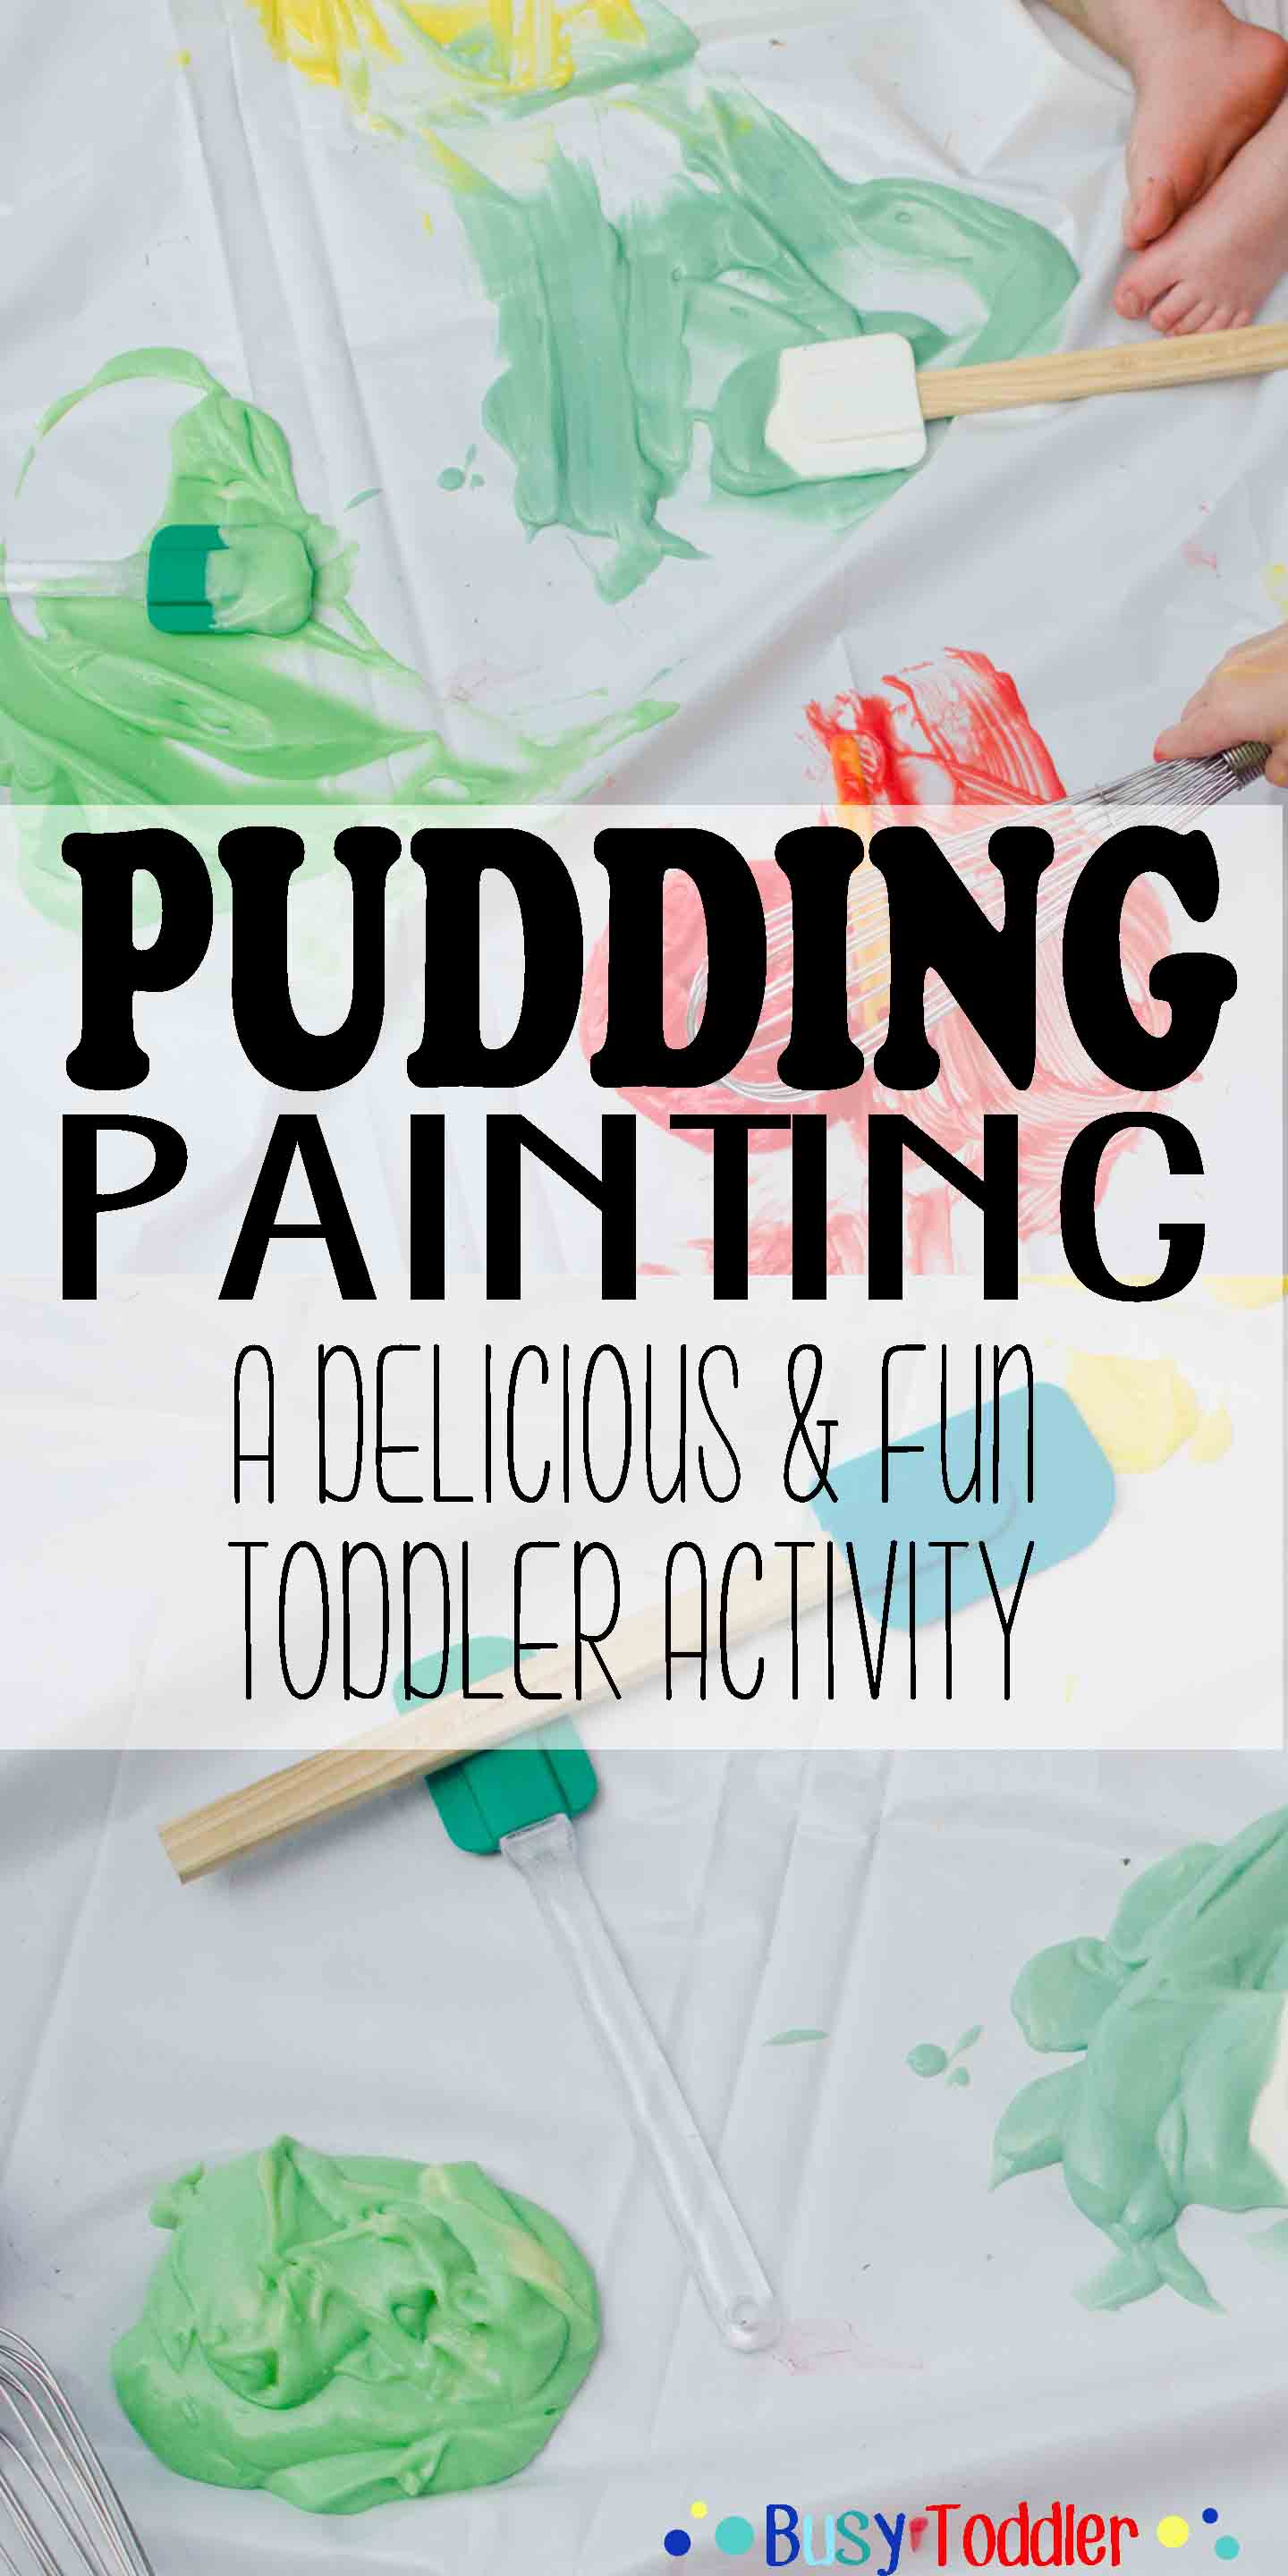 PUDDING PAINTING: A delicious and fun toddler activity